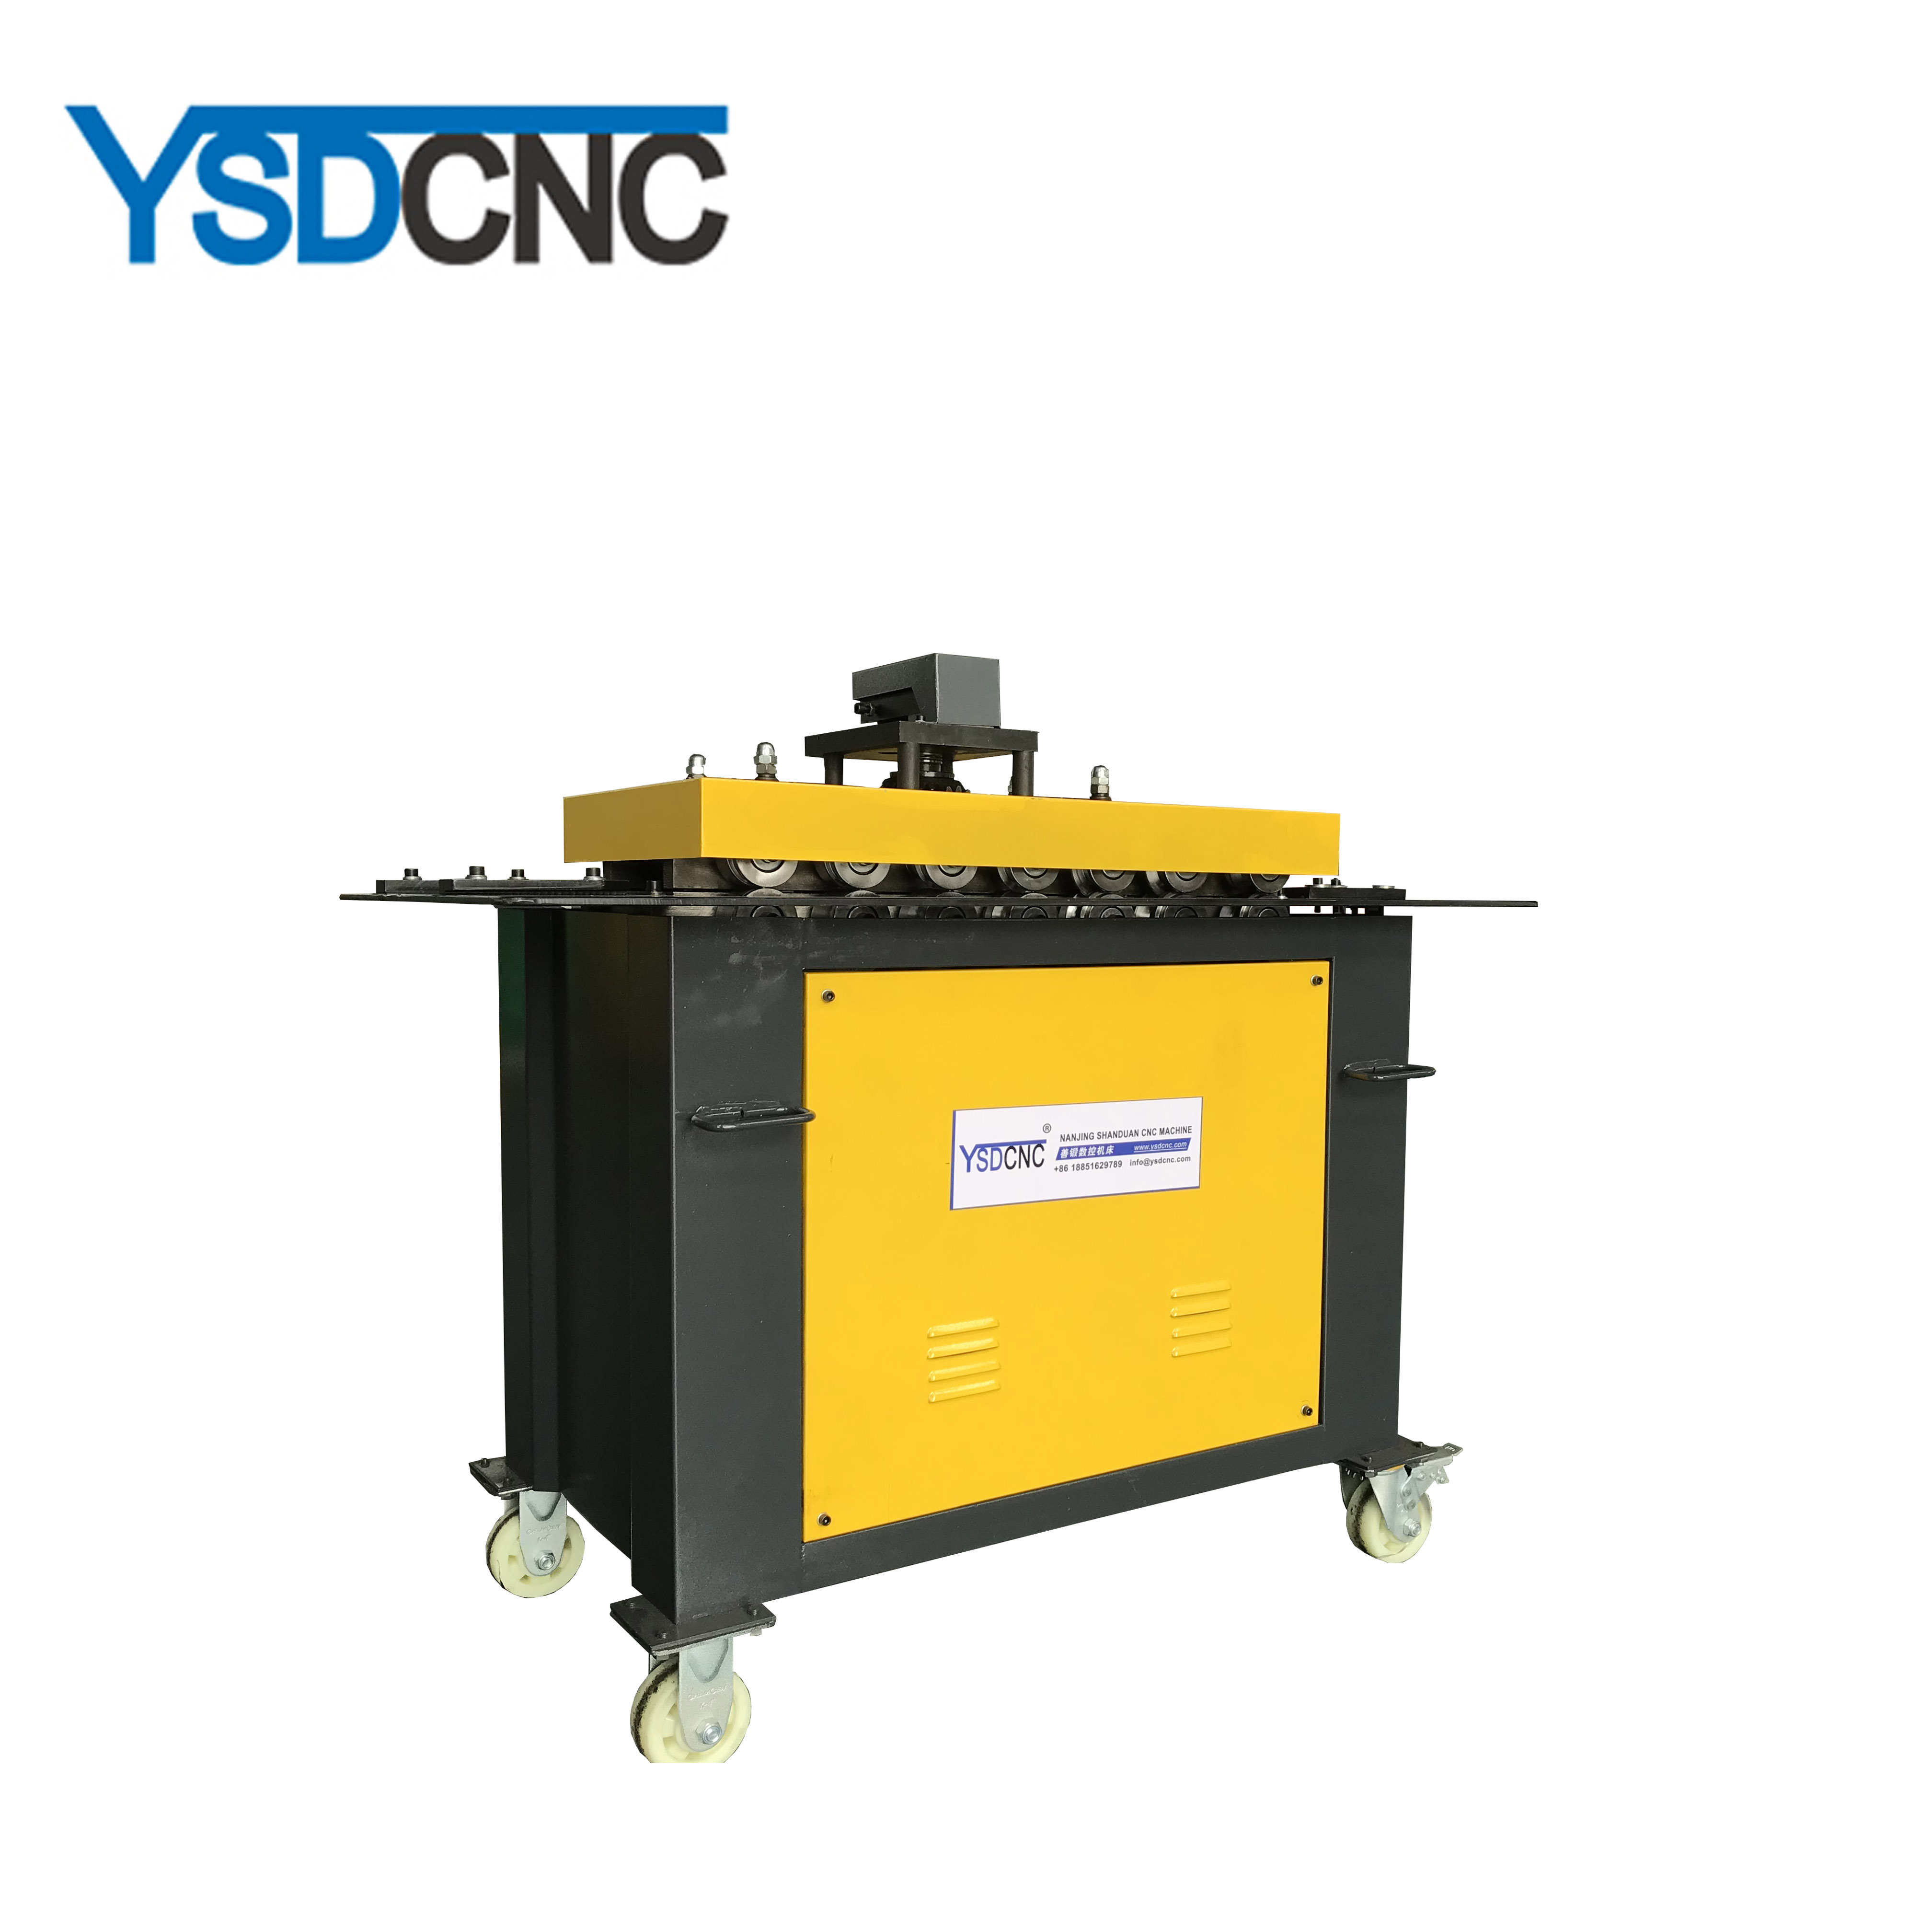 SA-12 Ventilation Air Duct square pipe lockformer sheet metal <strong>equipment</strong> for sales